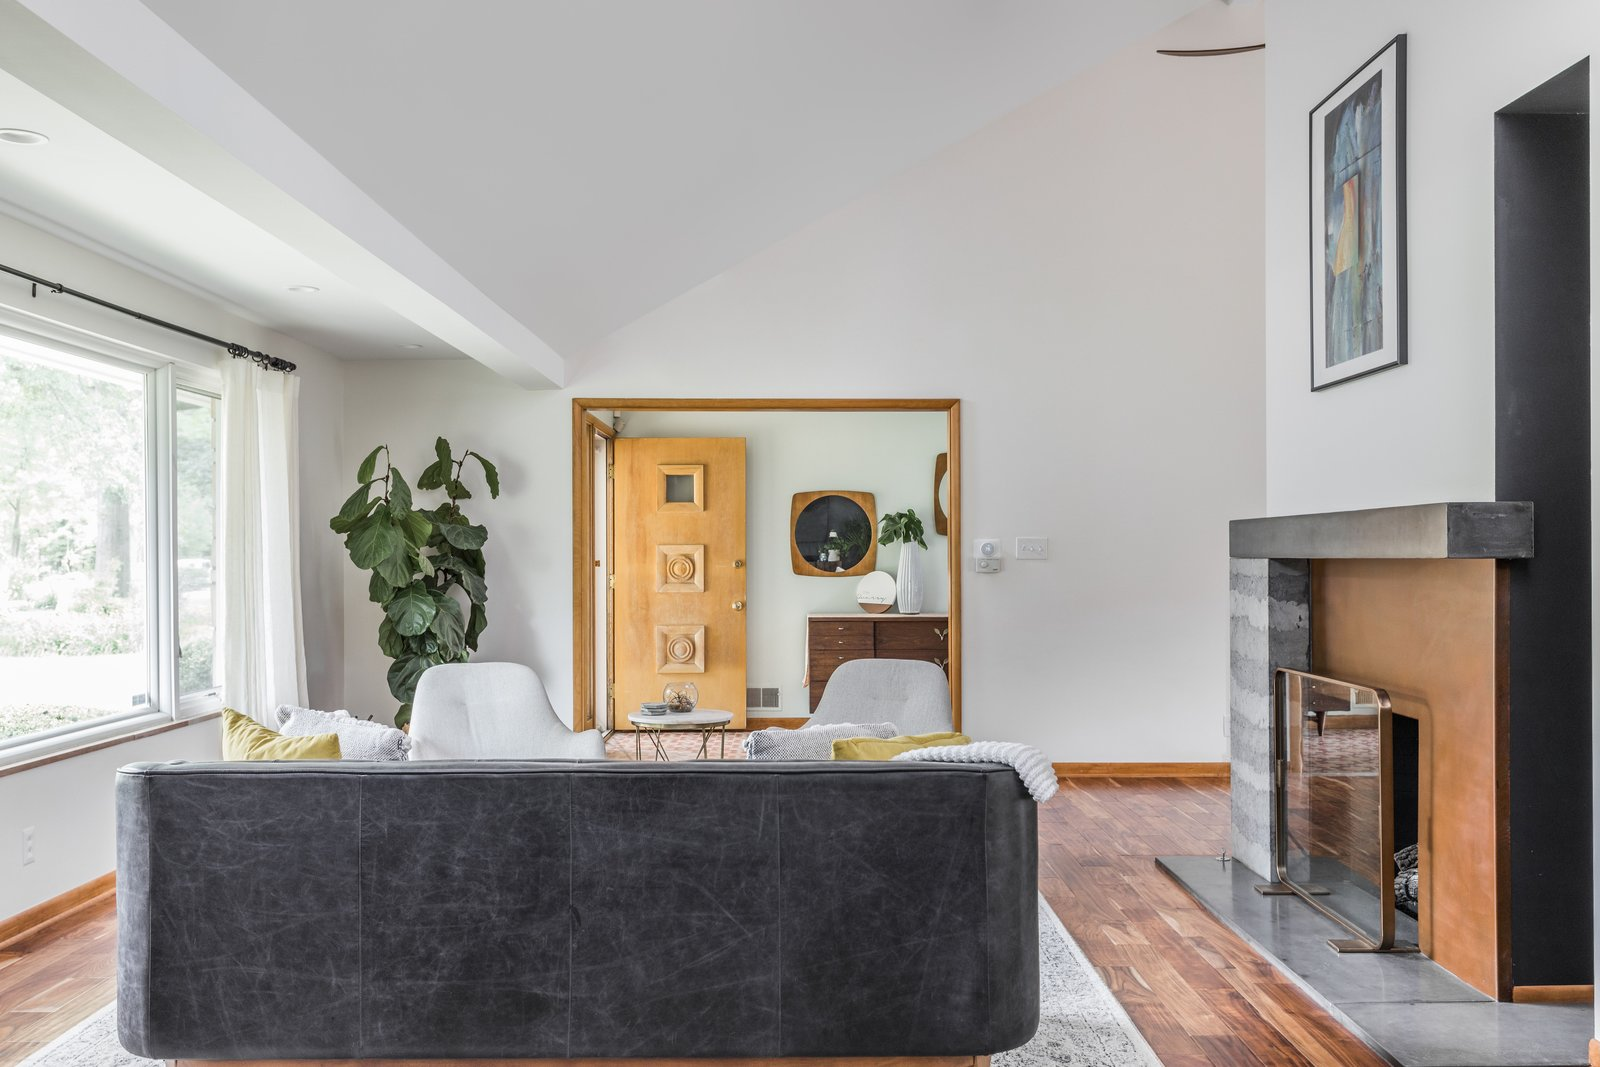 the-new-eight-foot-tall-chimney-though-the-cutout-was-never-a-part-of-their-original-plan-they-now-love-this-unique-feature-as-it-brings-ample-light-into-the-dining-room.jpg